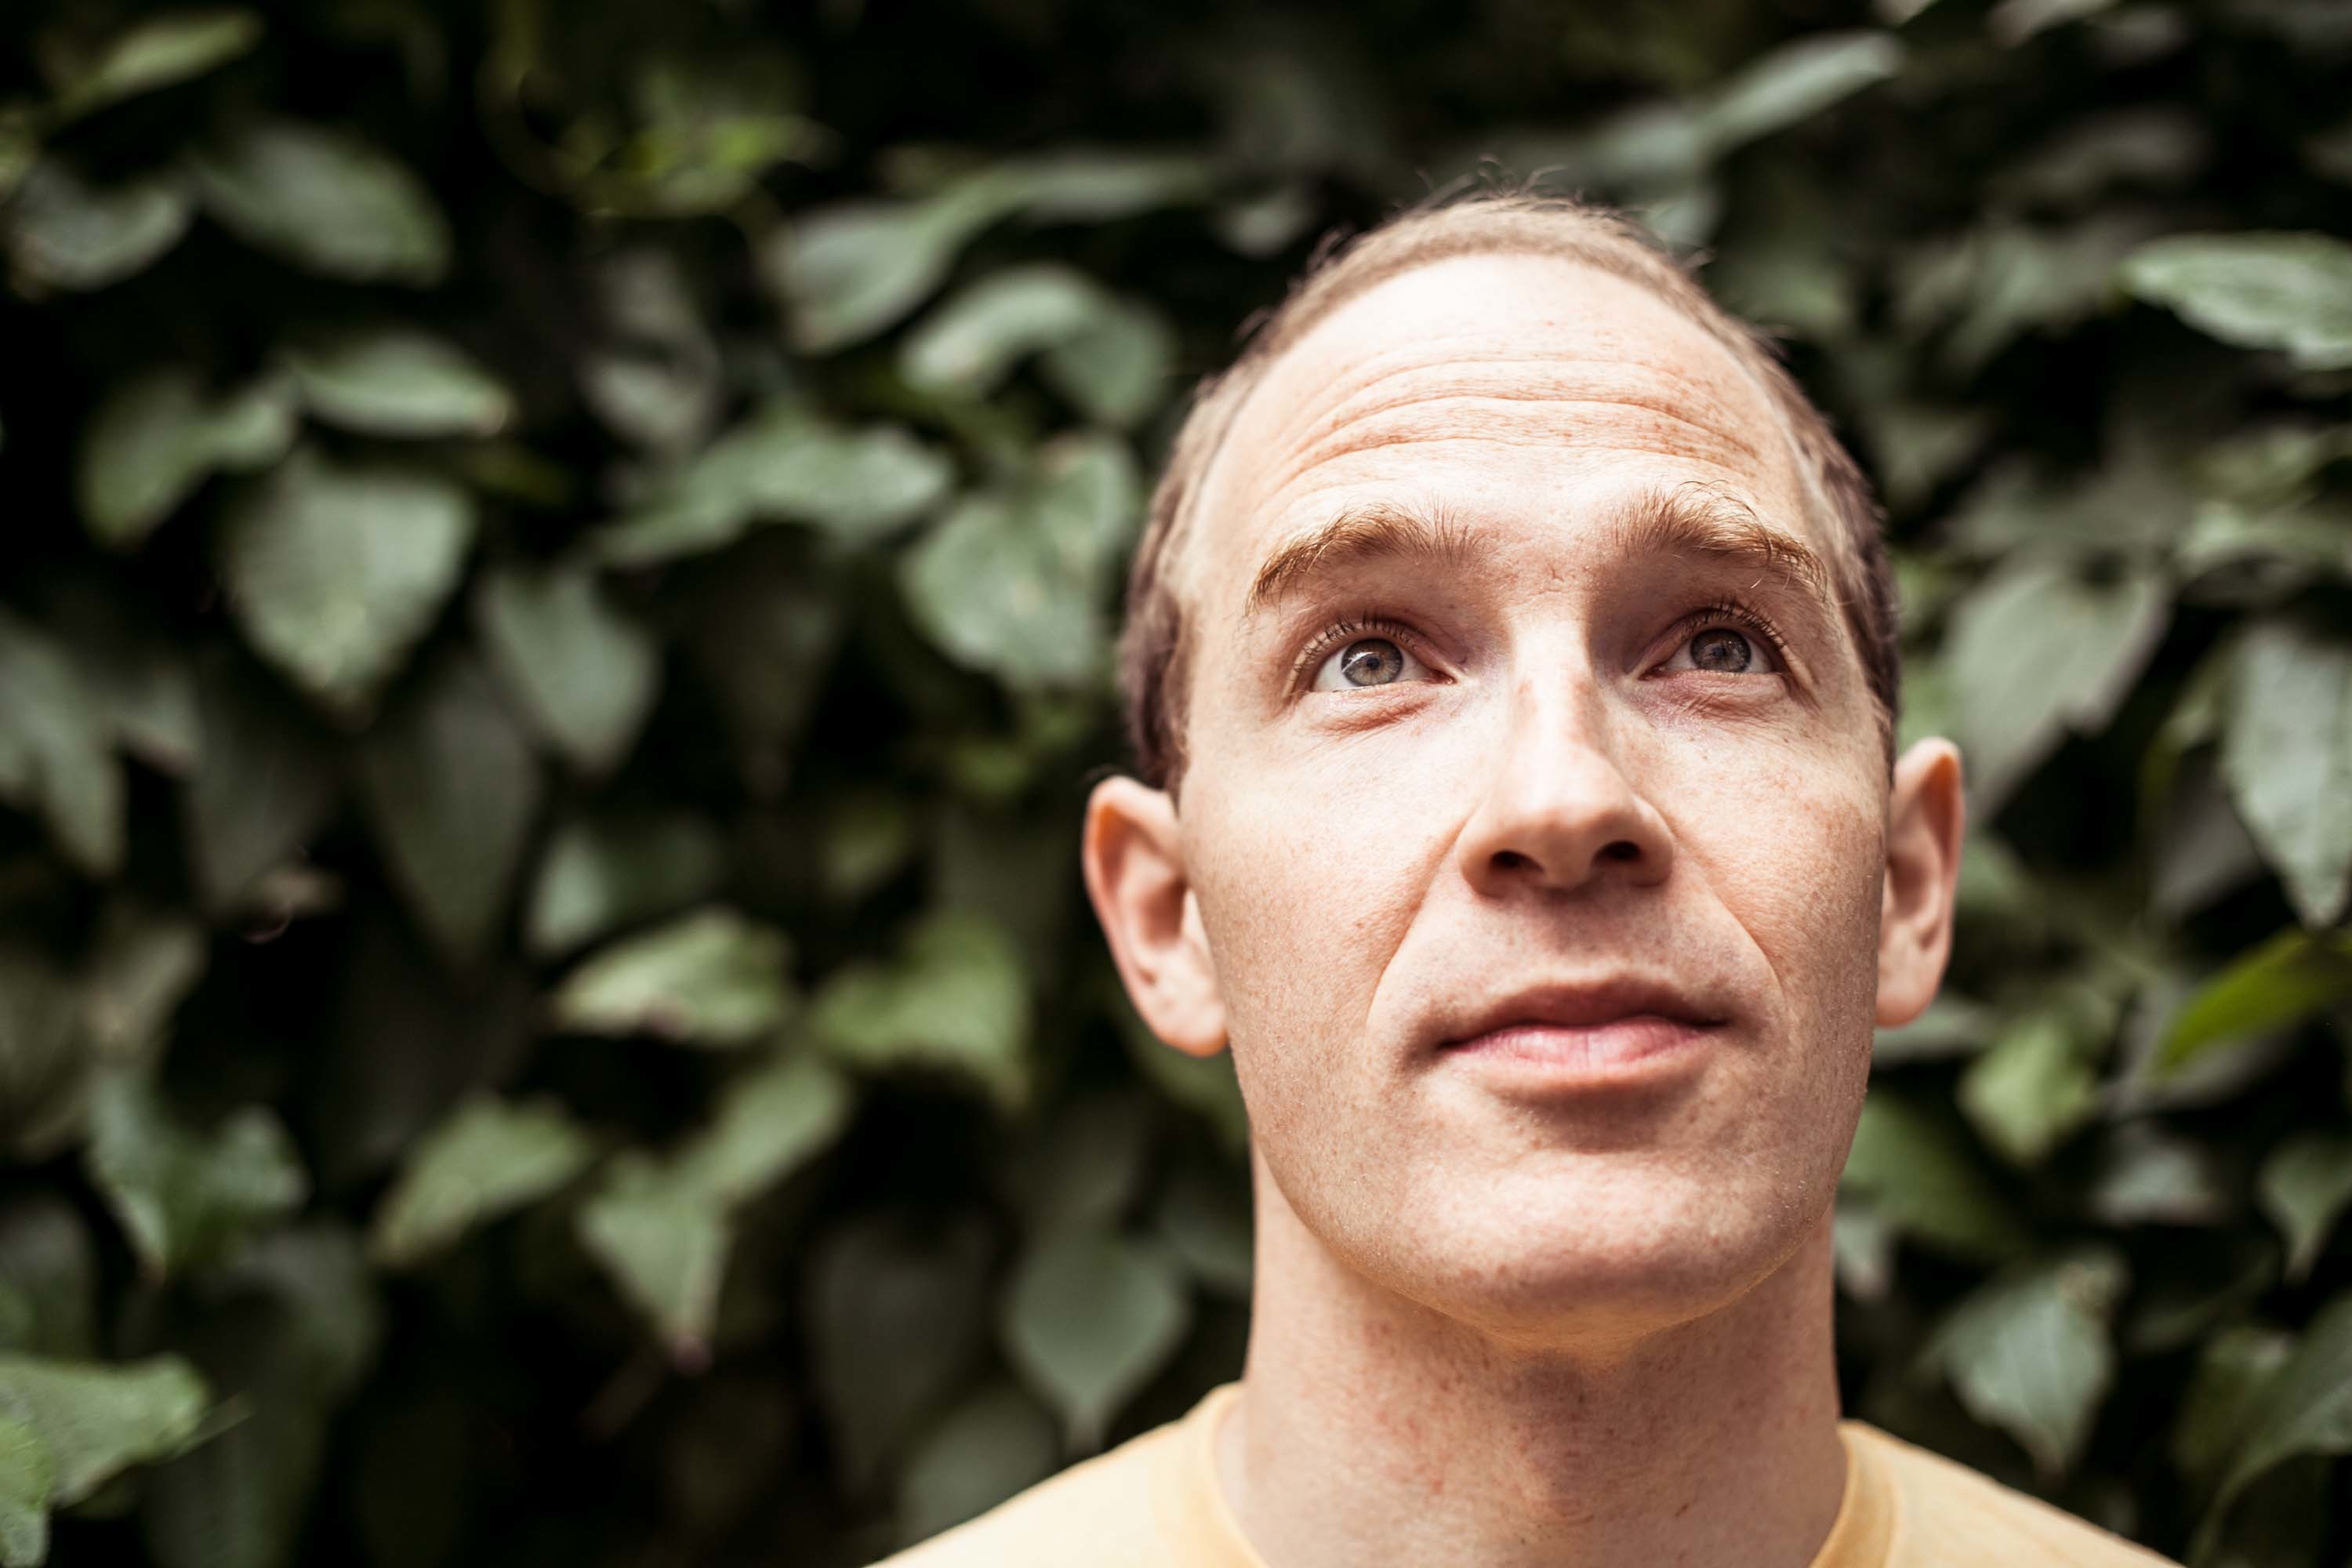 Caribou's 1000-song 'The Longest Mixtape' is now available on Spotify